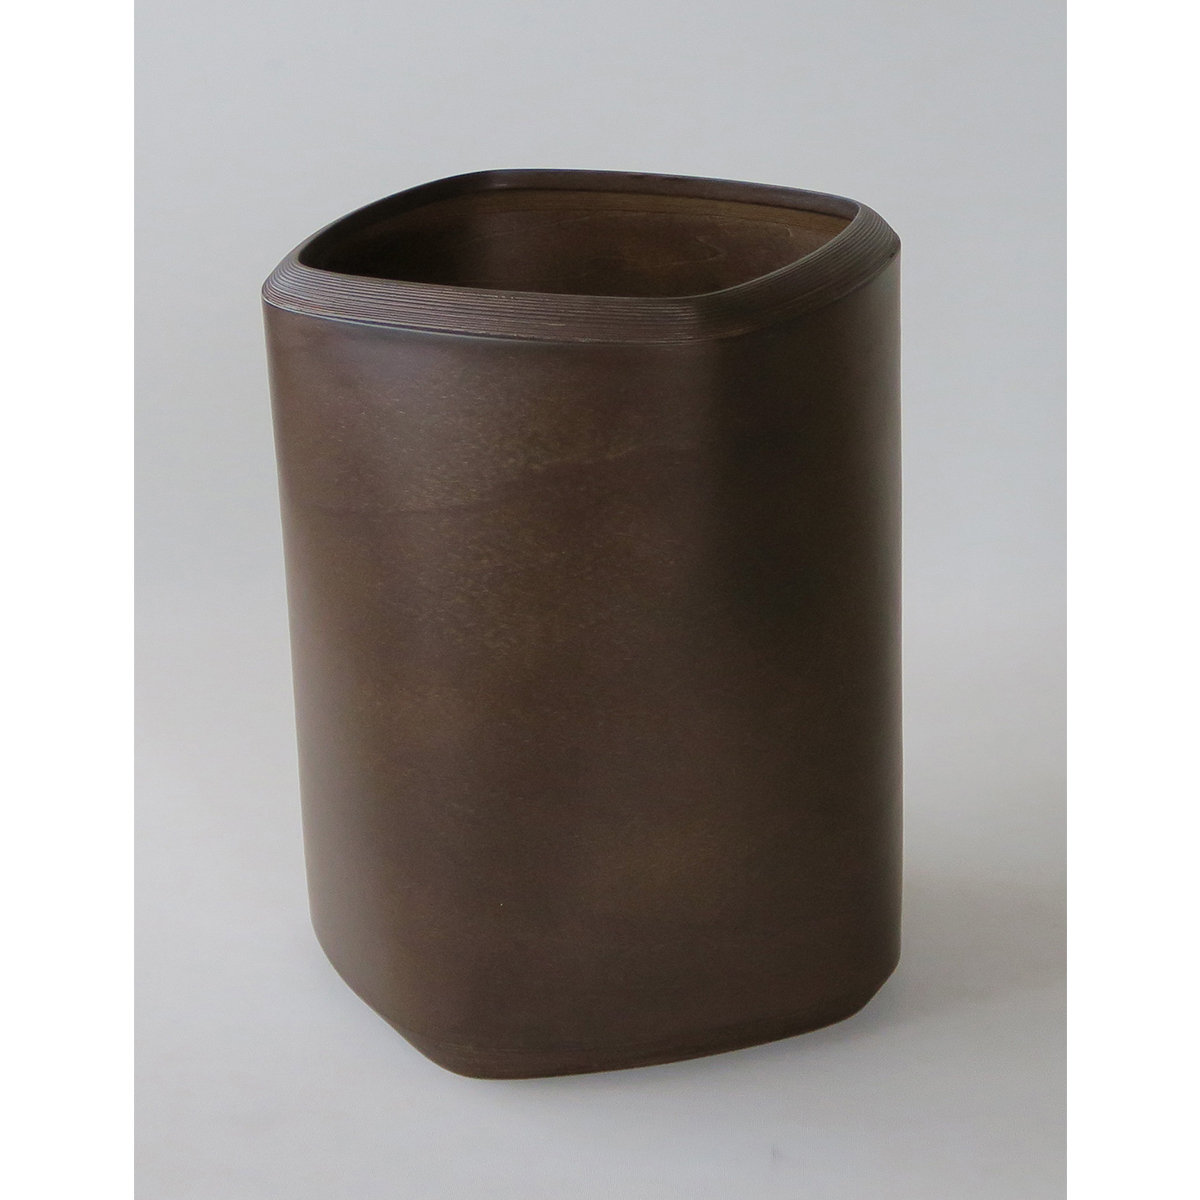 ブナコ INTERIOR GOODS DUST BIN IB-D9246 Dark brown /マルゲリータ